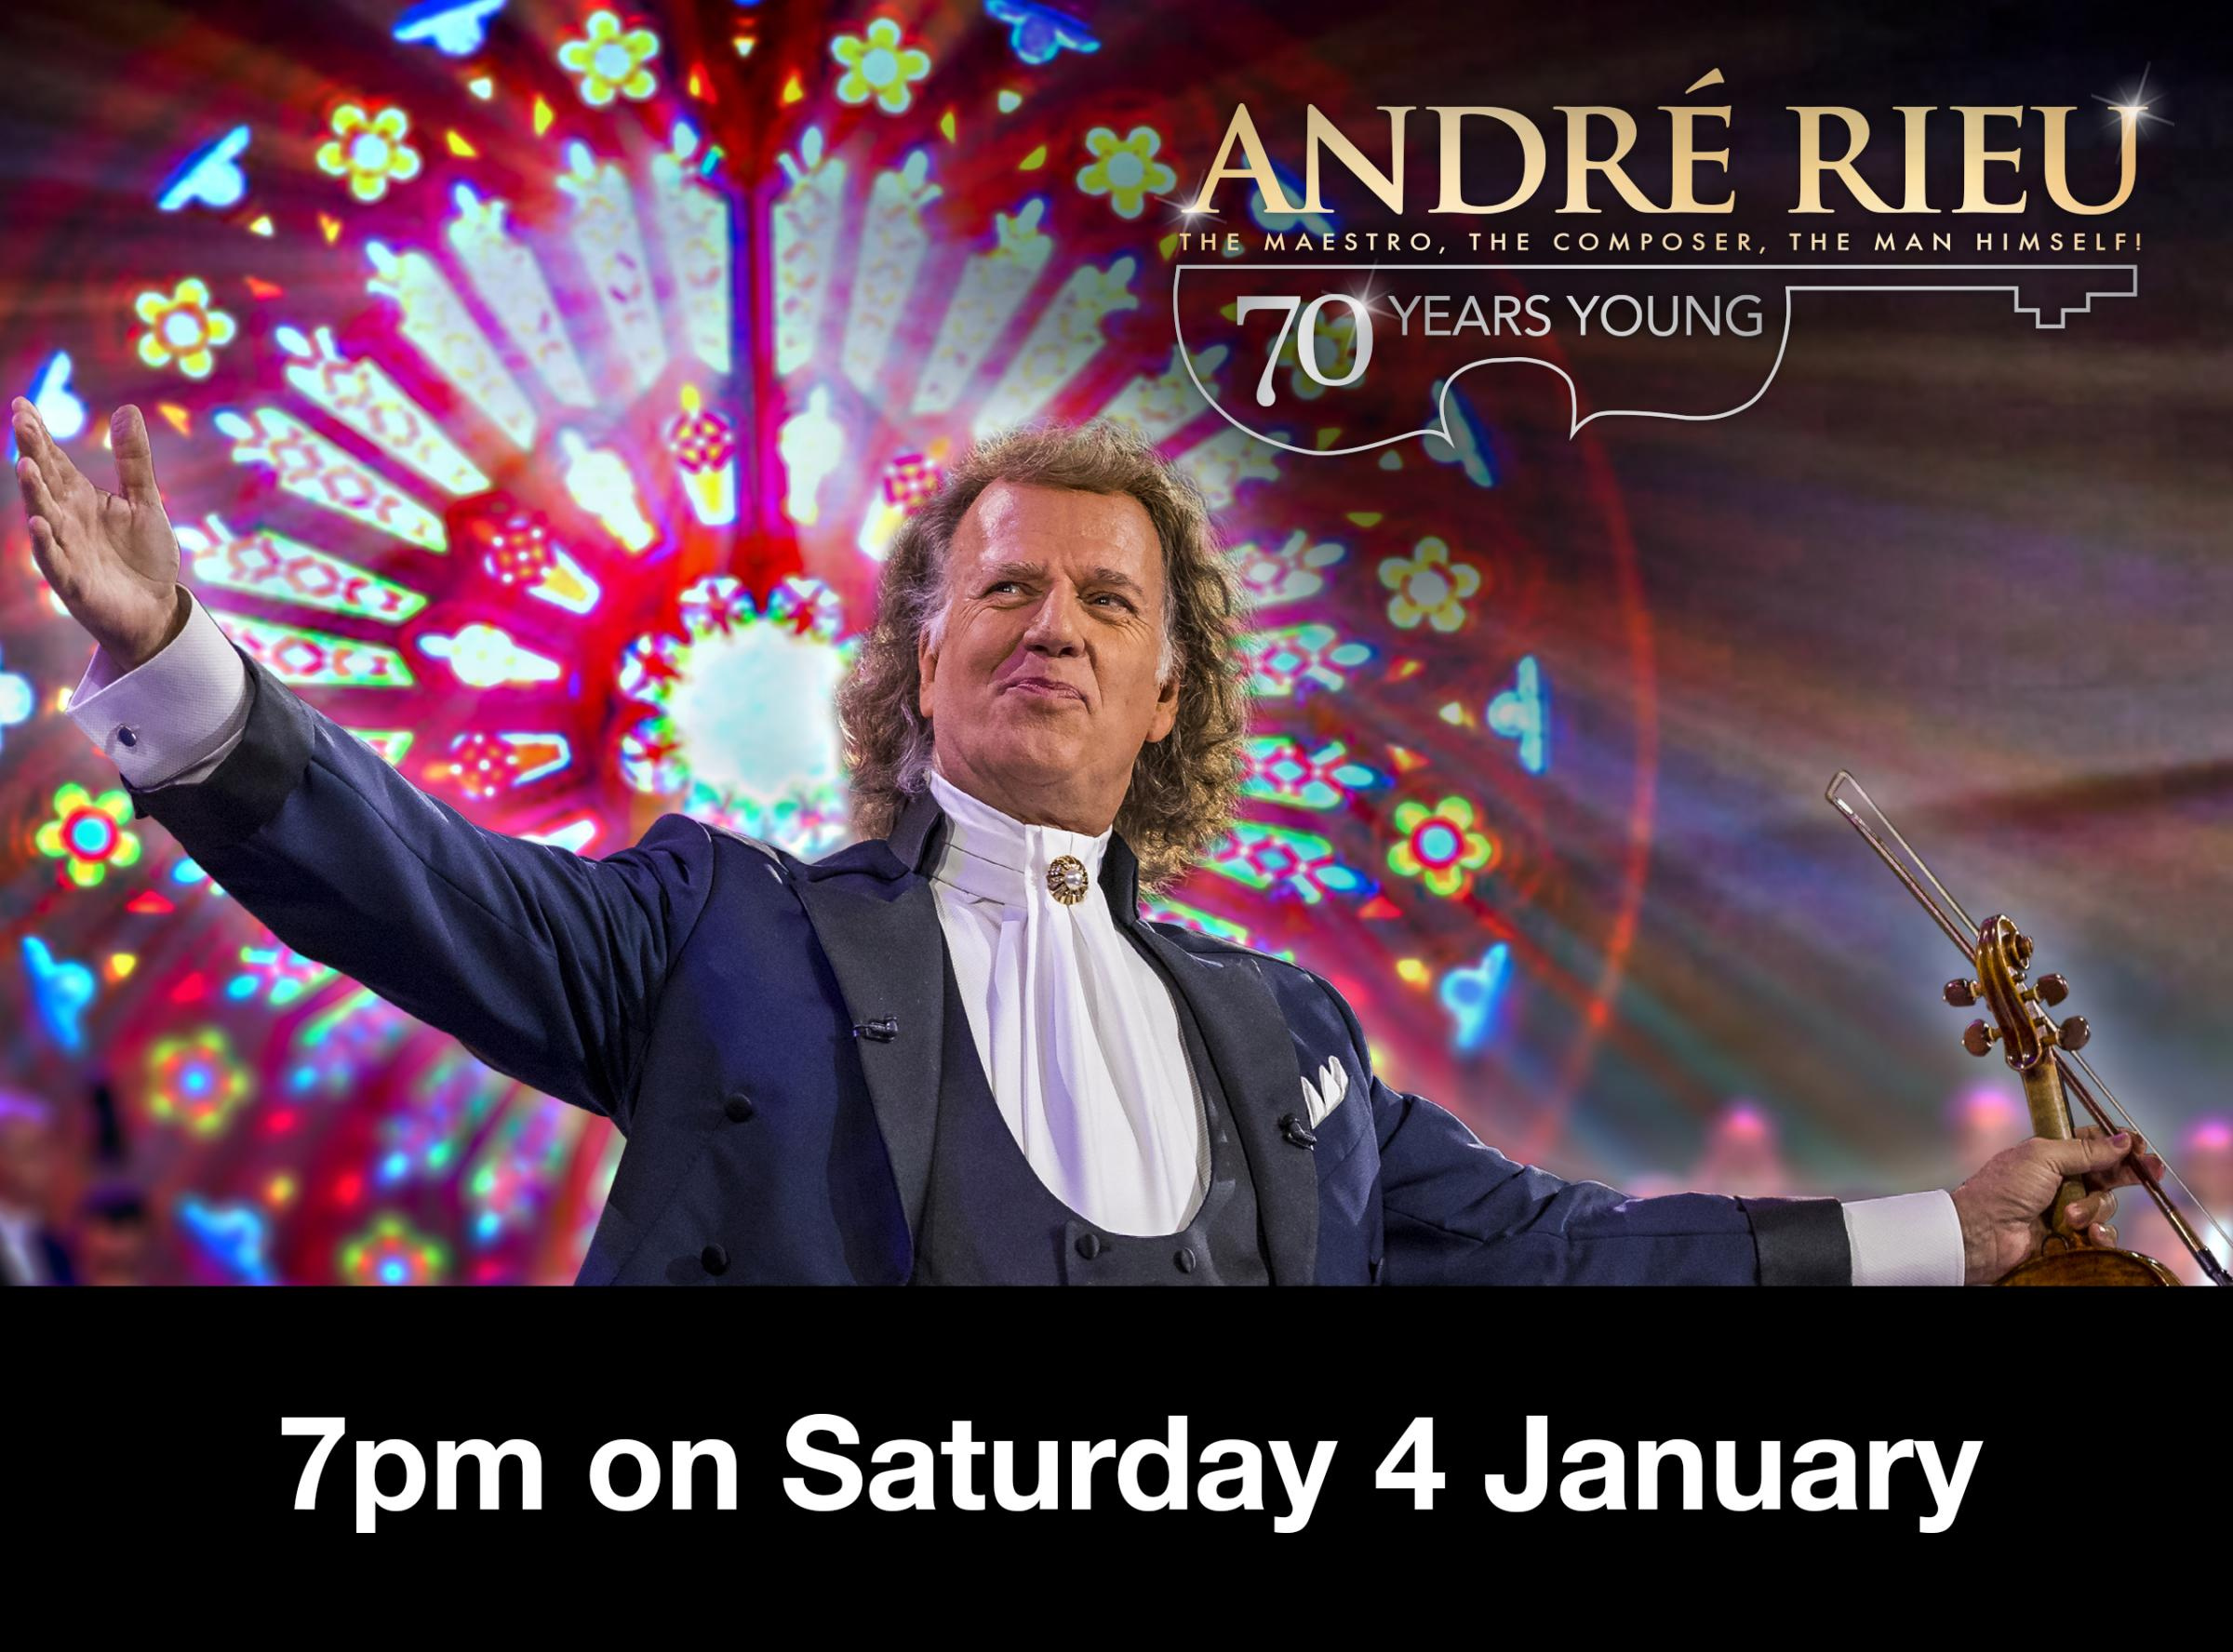 André Rieu: 70 Years Young